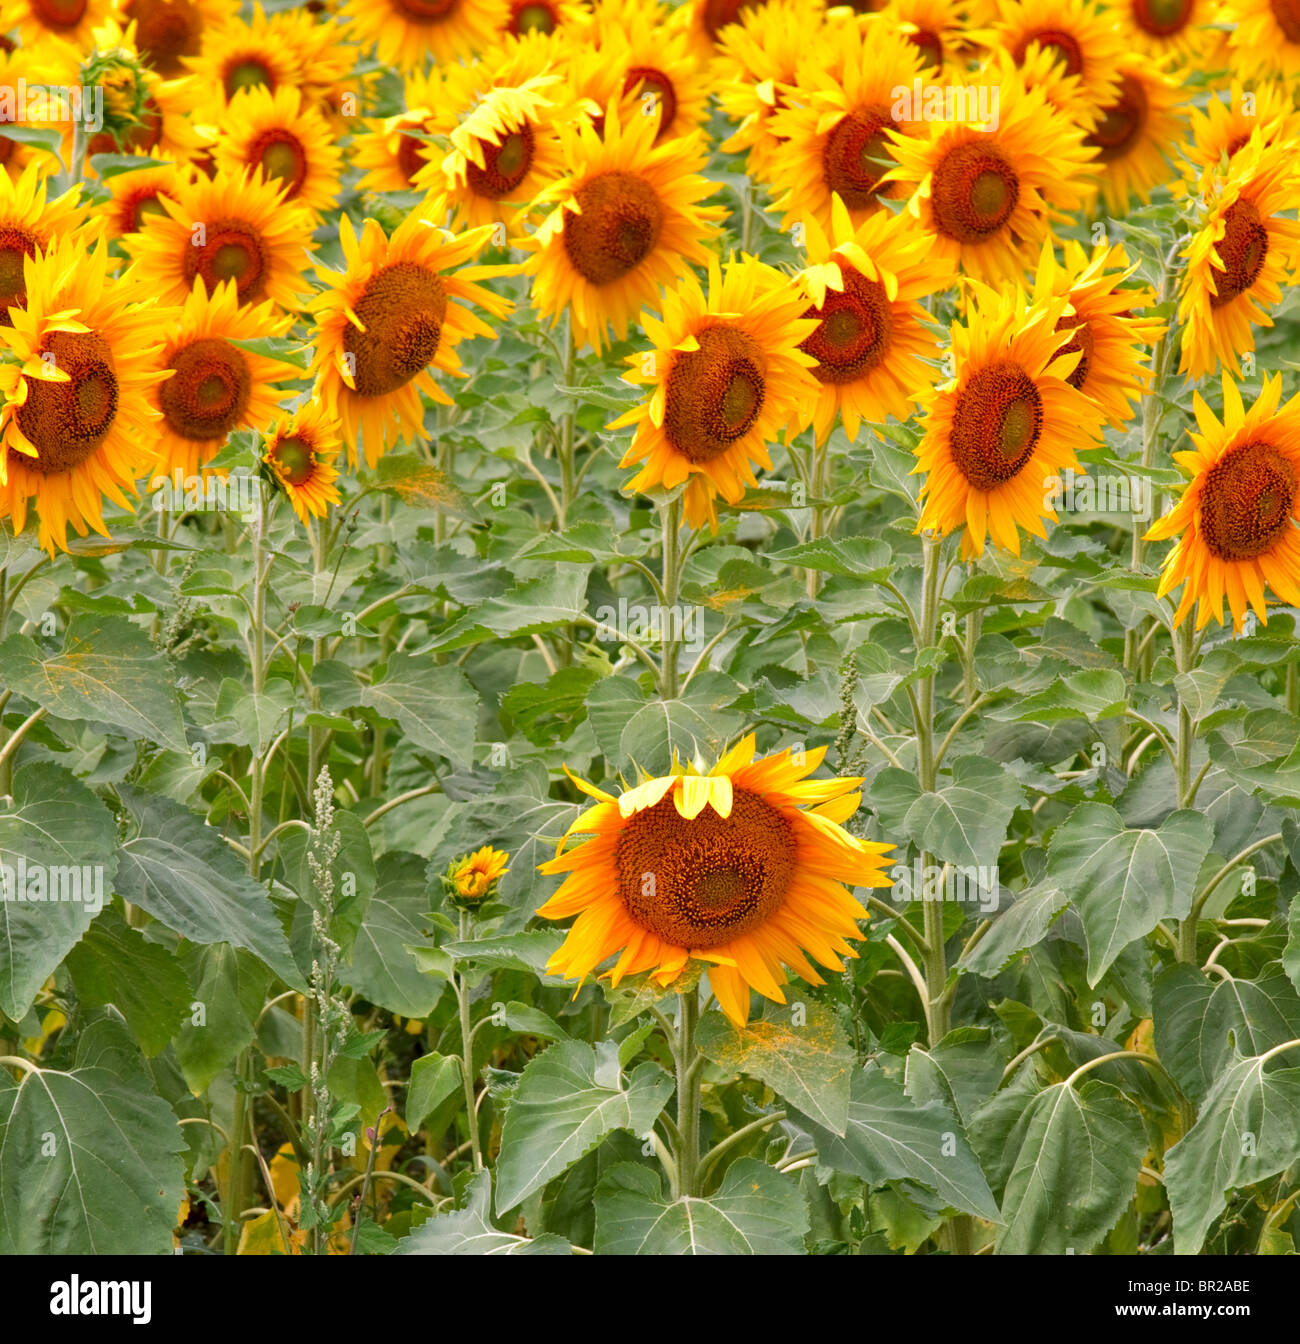 Sunflowers growing in a field in Prince Edward County, Ontario, Canada - Stock Image